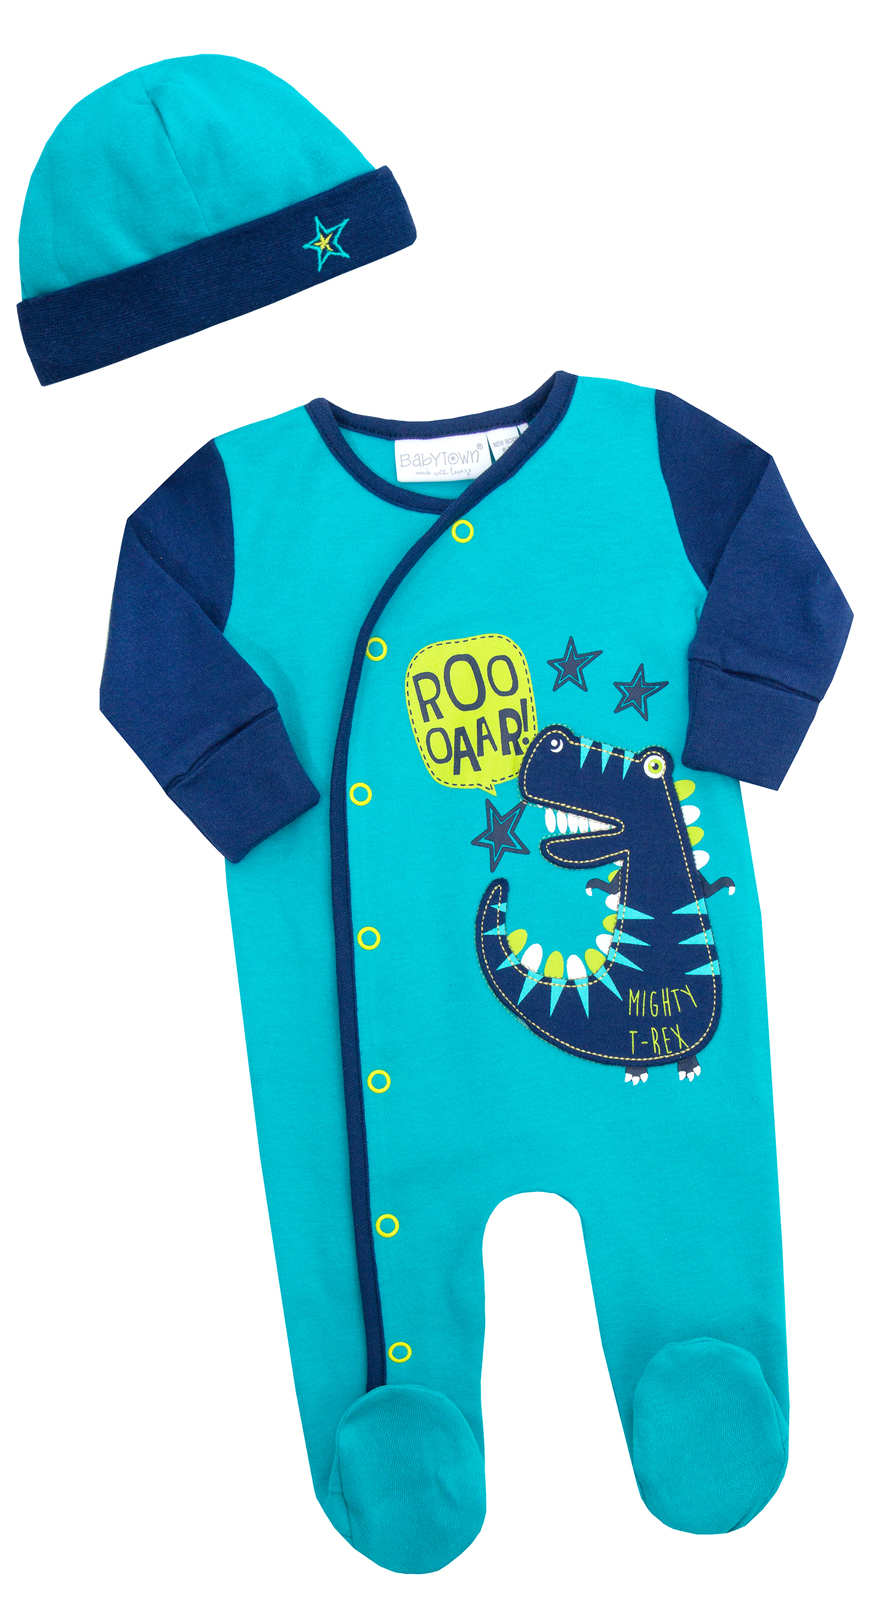 Baby Boys Girls Sleepsuit Hat 2 Piece Outfit Romper Set Babygrow Infants Size